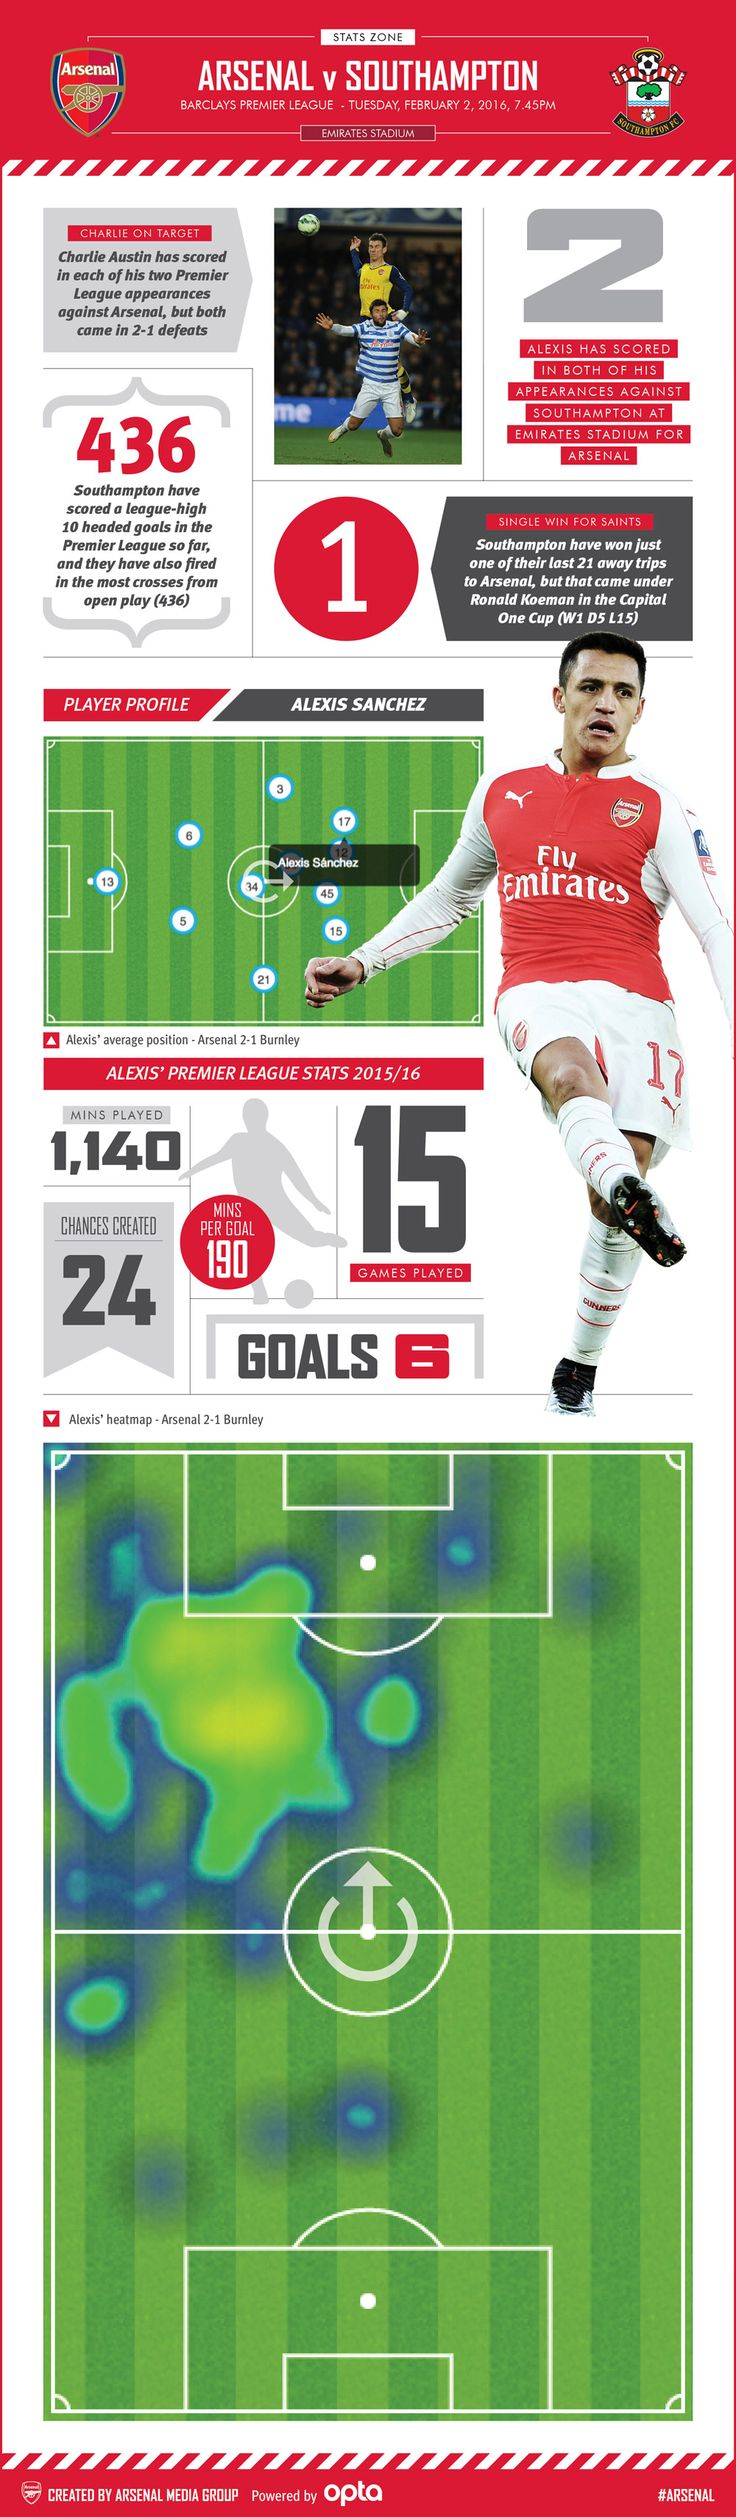 Stats Zone - Southampton (h). Our pre-match graphic has match facts and a closer look at Alexis' Premier League form this season.